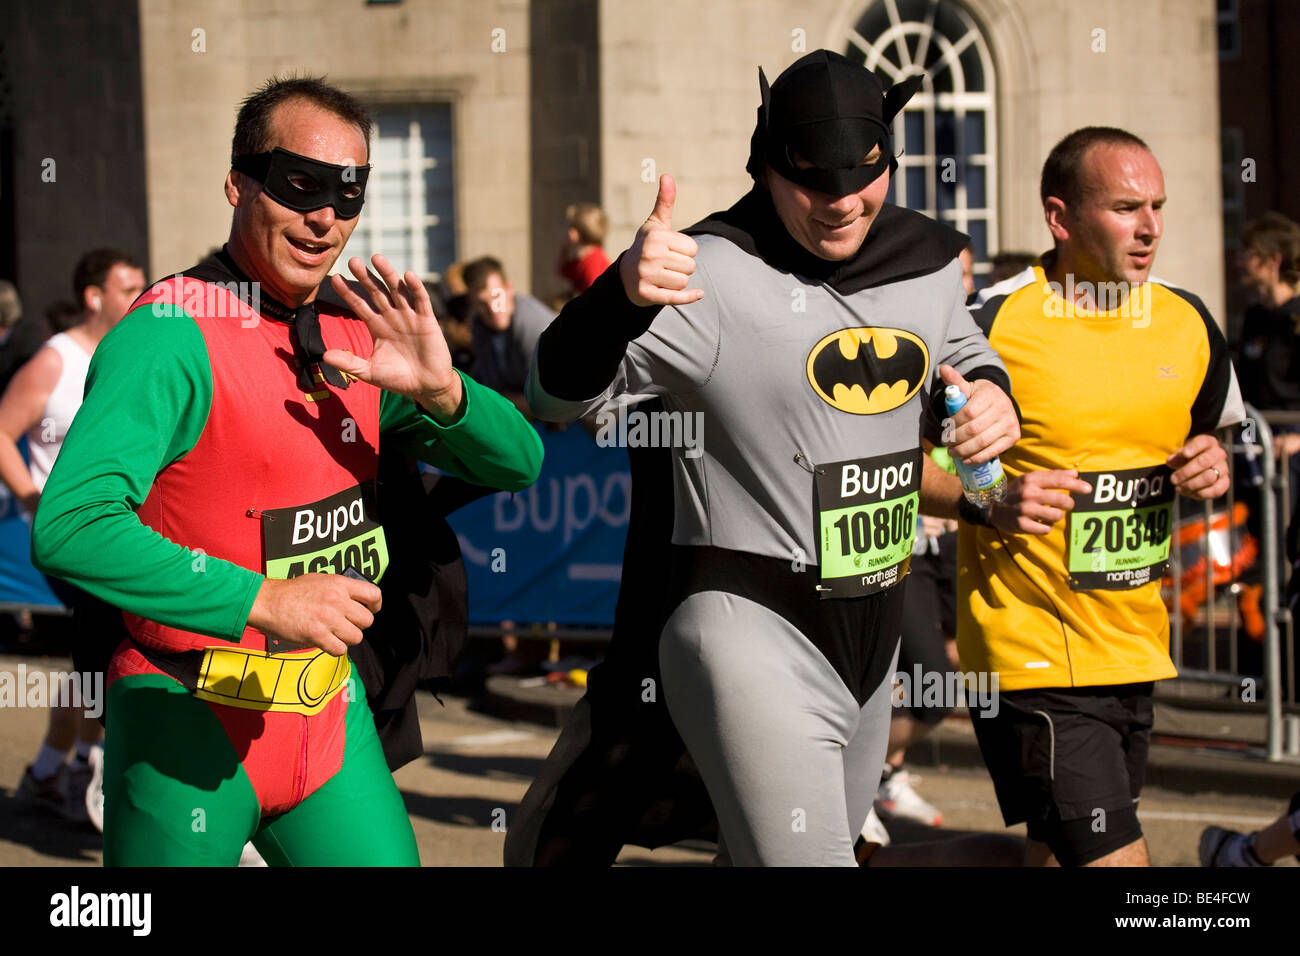 Men in Robin (left of image) and Batman (centre) costumes participate in the 2009 Bupa Great North Run.  sc 1 st  Alamy & Men in Robin (left of image) and Batman (centre) costumes ...